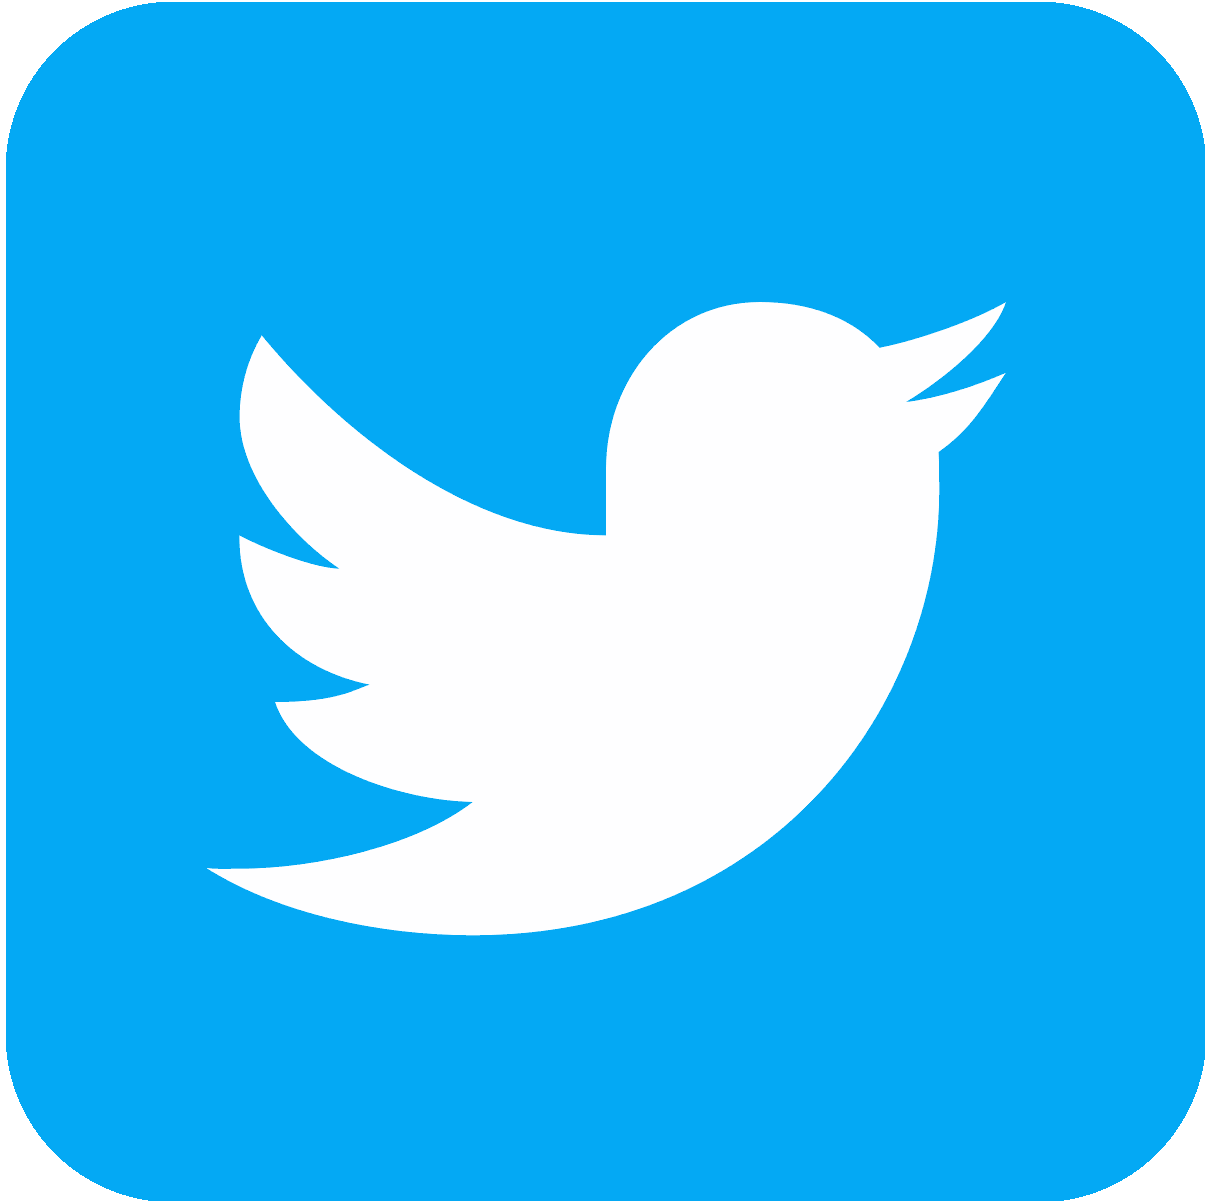 twitter_icon-1.png